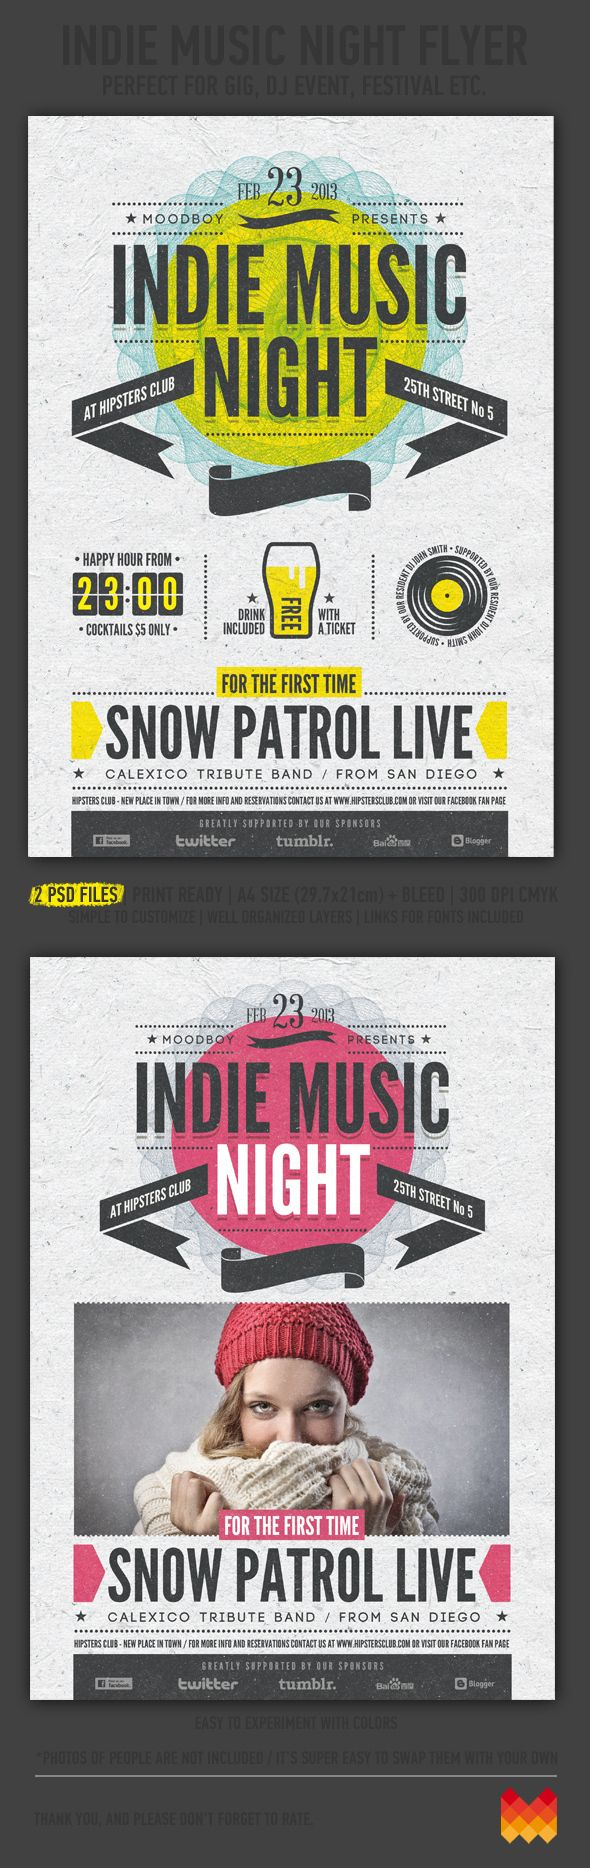 Indie Music Night Flyer/Poster by moodboy , via Behance